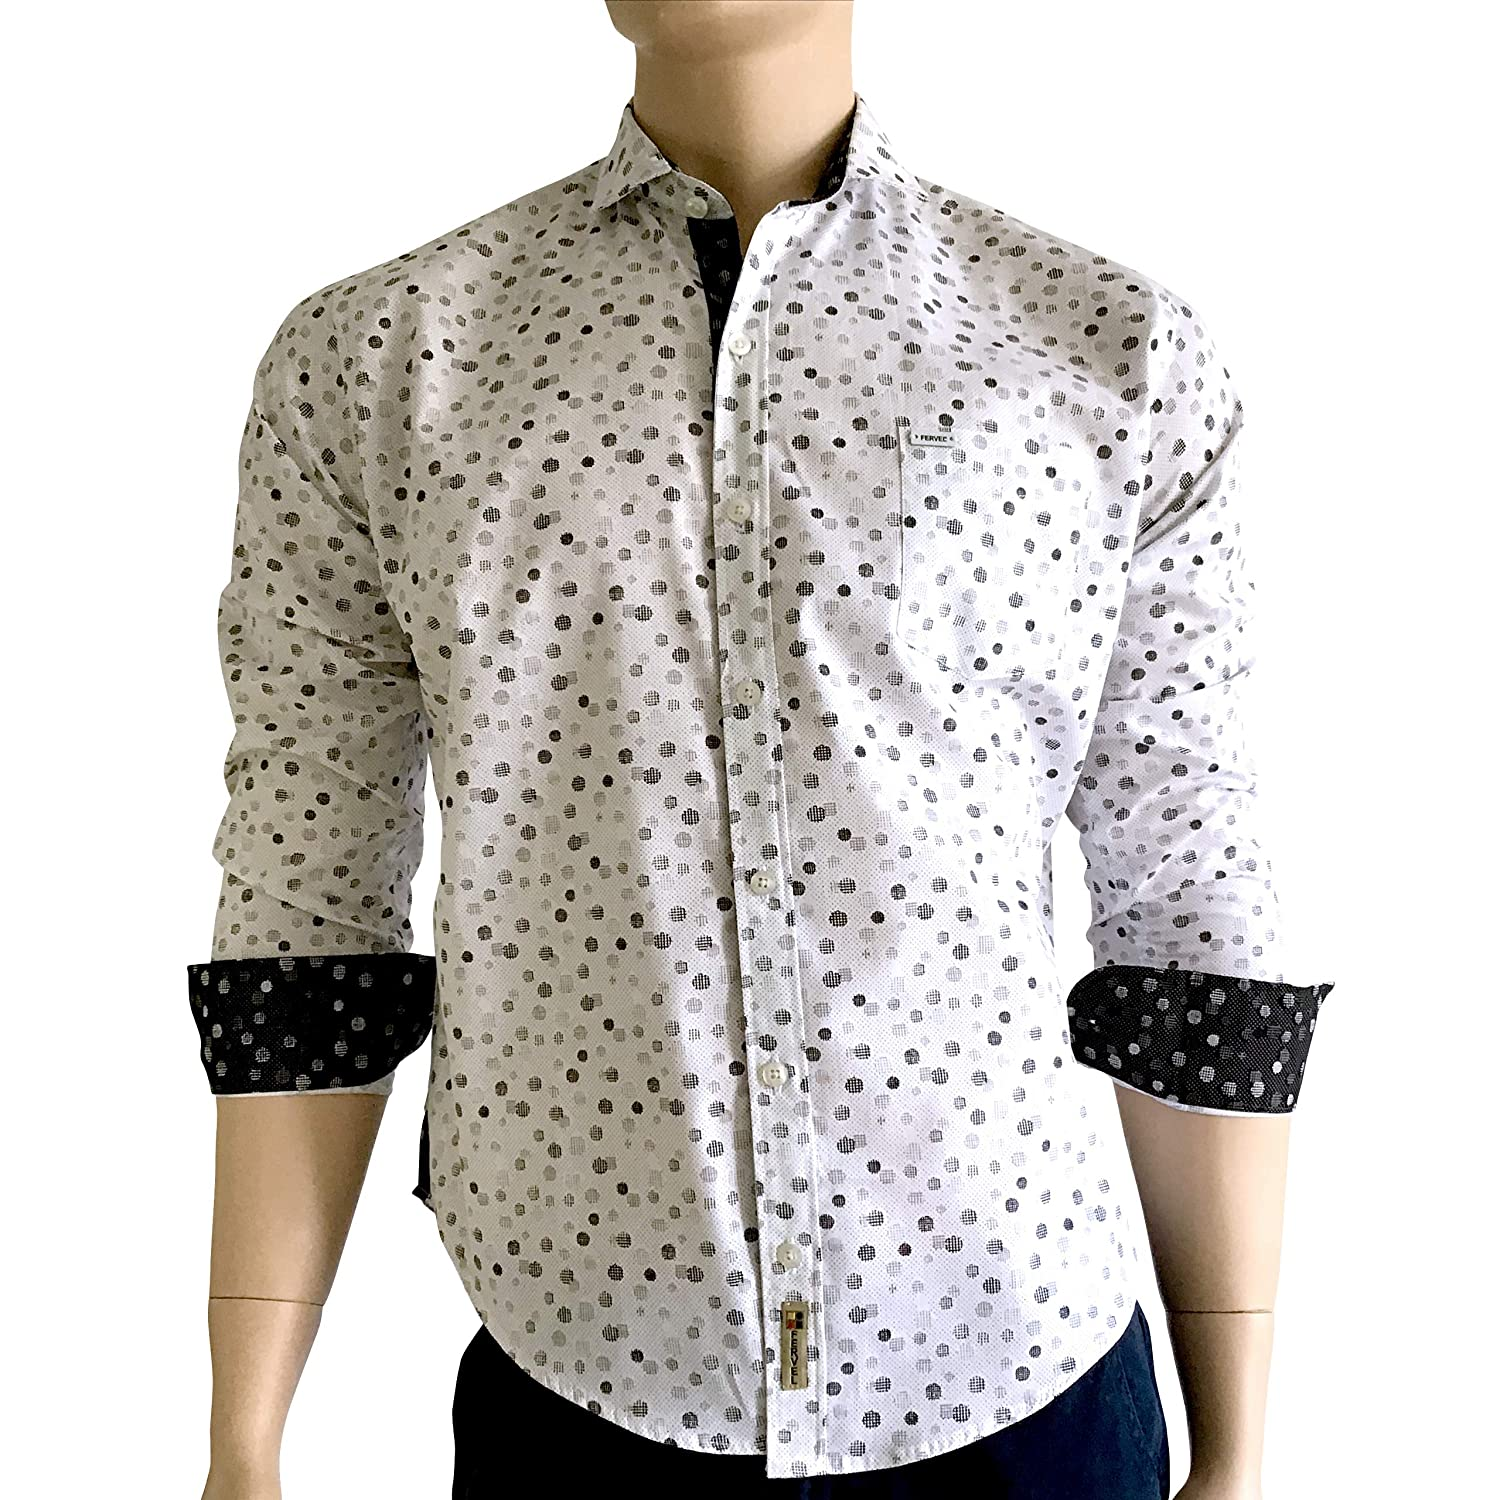 Fervel Mens Slim-Fit Long Sleeve Shirt Printed White Cotton Nacre Buttons (N) at Amazon Mens Clothing store: